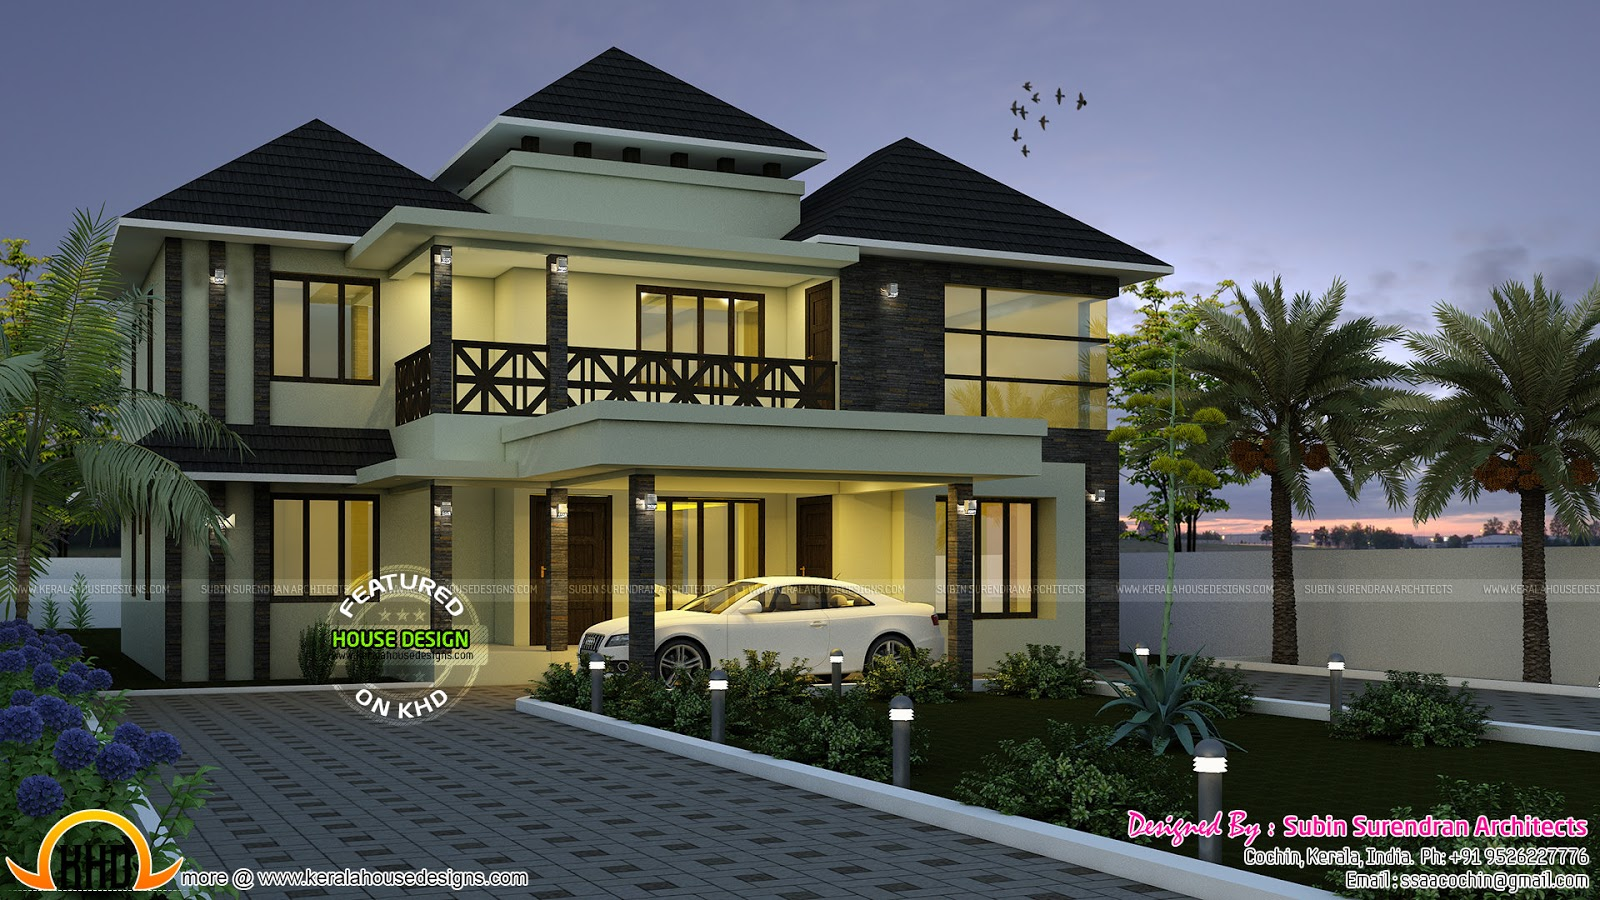 Superb sloping roof house plan kerala home design and for Kerala house roofing designs